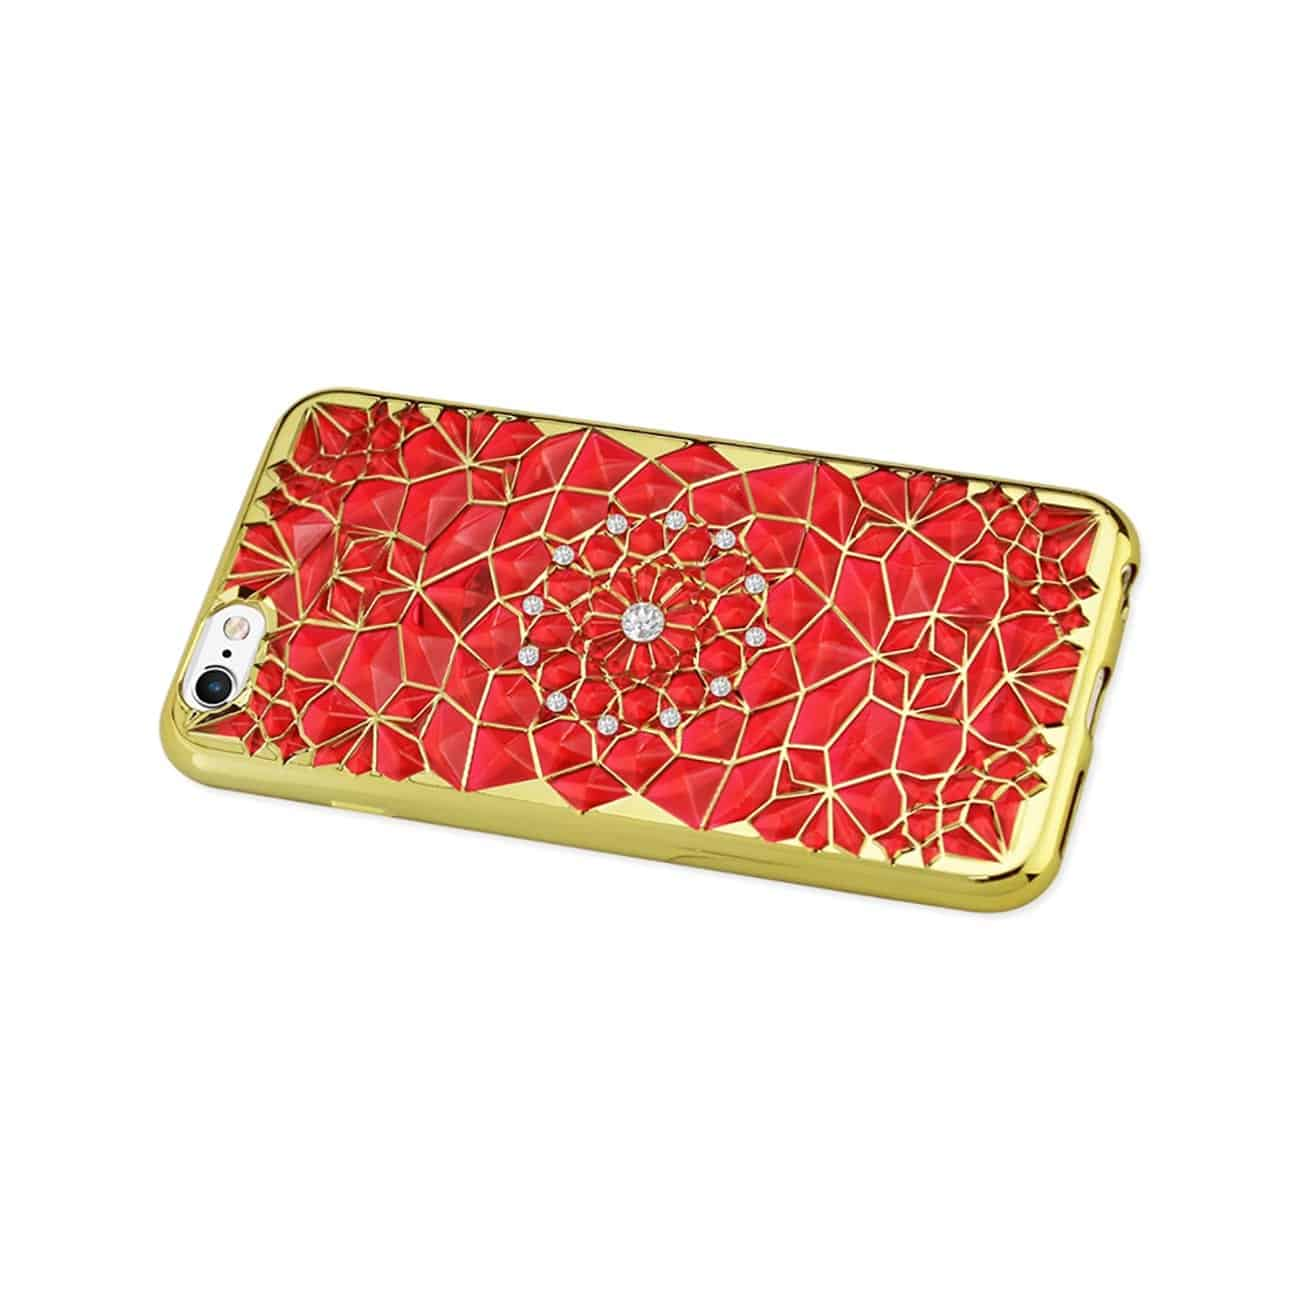 IPHONE 6/ 6S SOFT TPU CASE WITH SPARKLING DIAMOND SUNFLOWER DESIGN IN RED